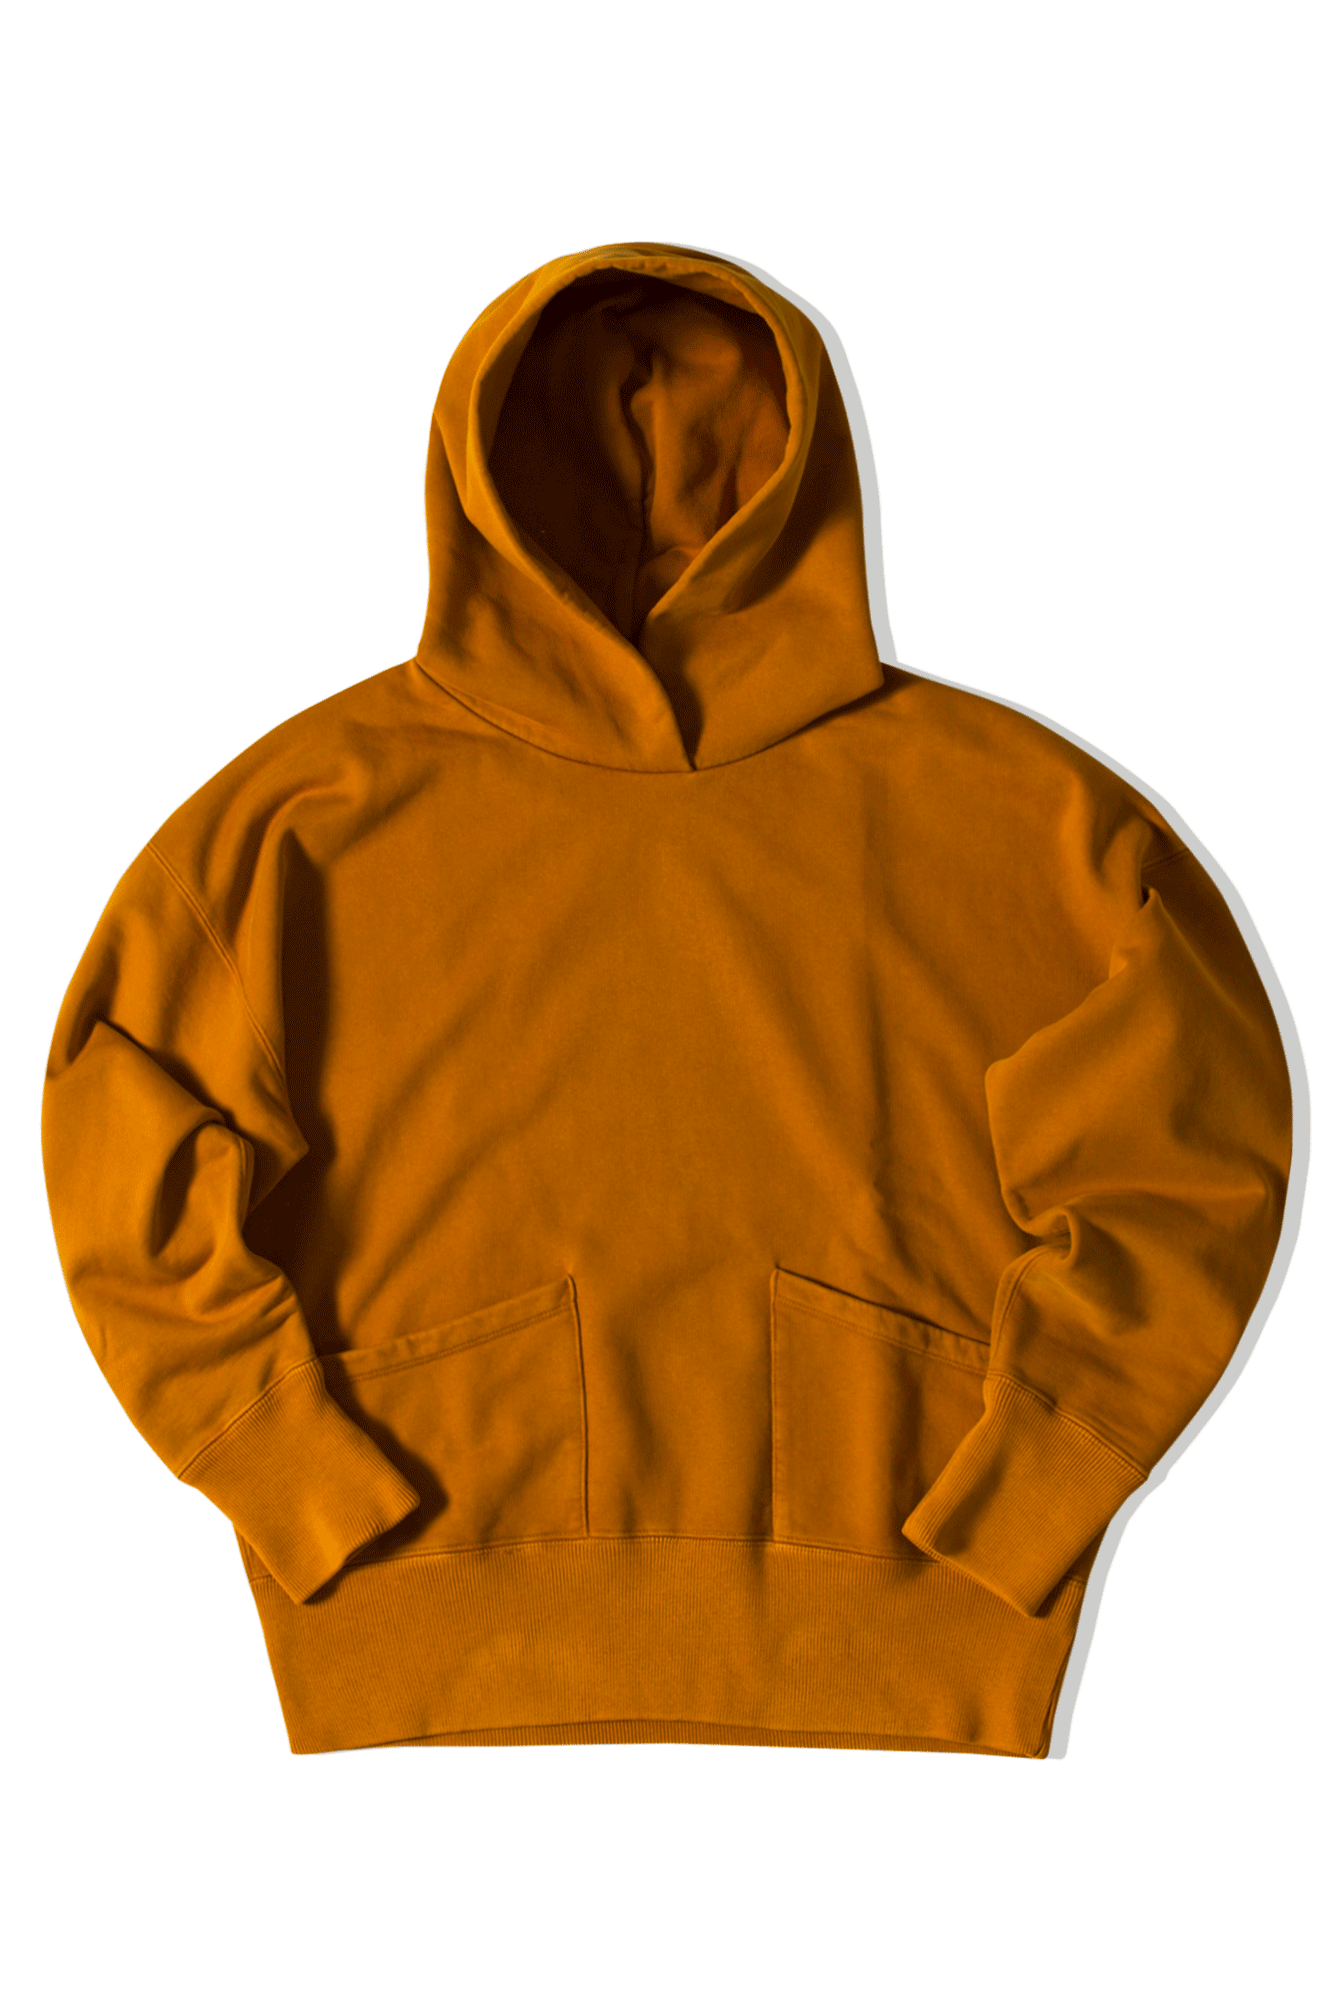 Levi's Sweaters 1950s Hoodie Sorrel Orange 9442800100#000#C0005#M - One Block Down